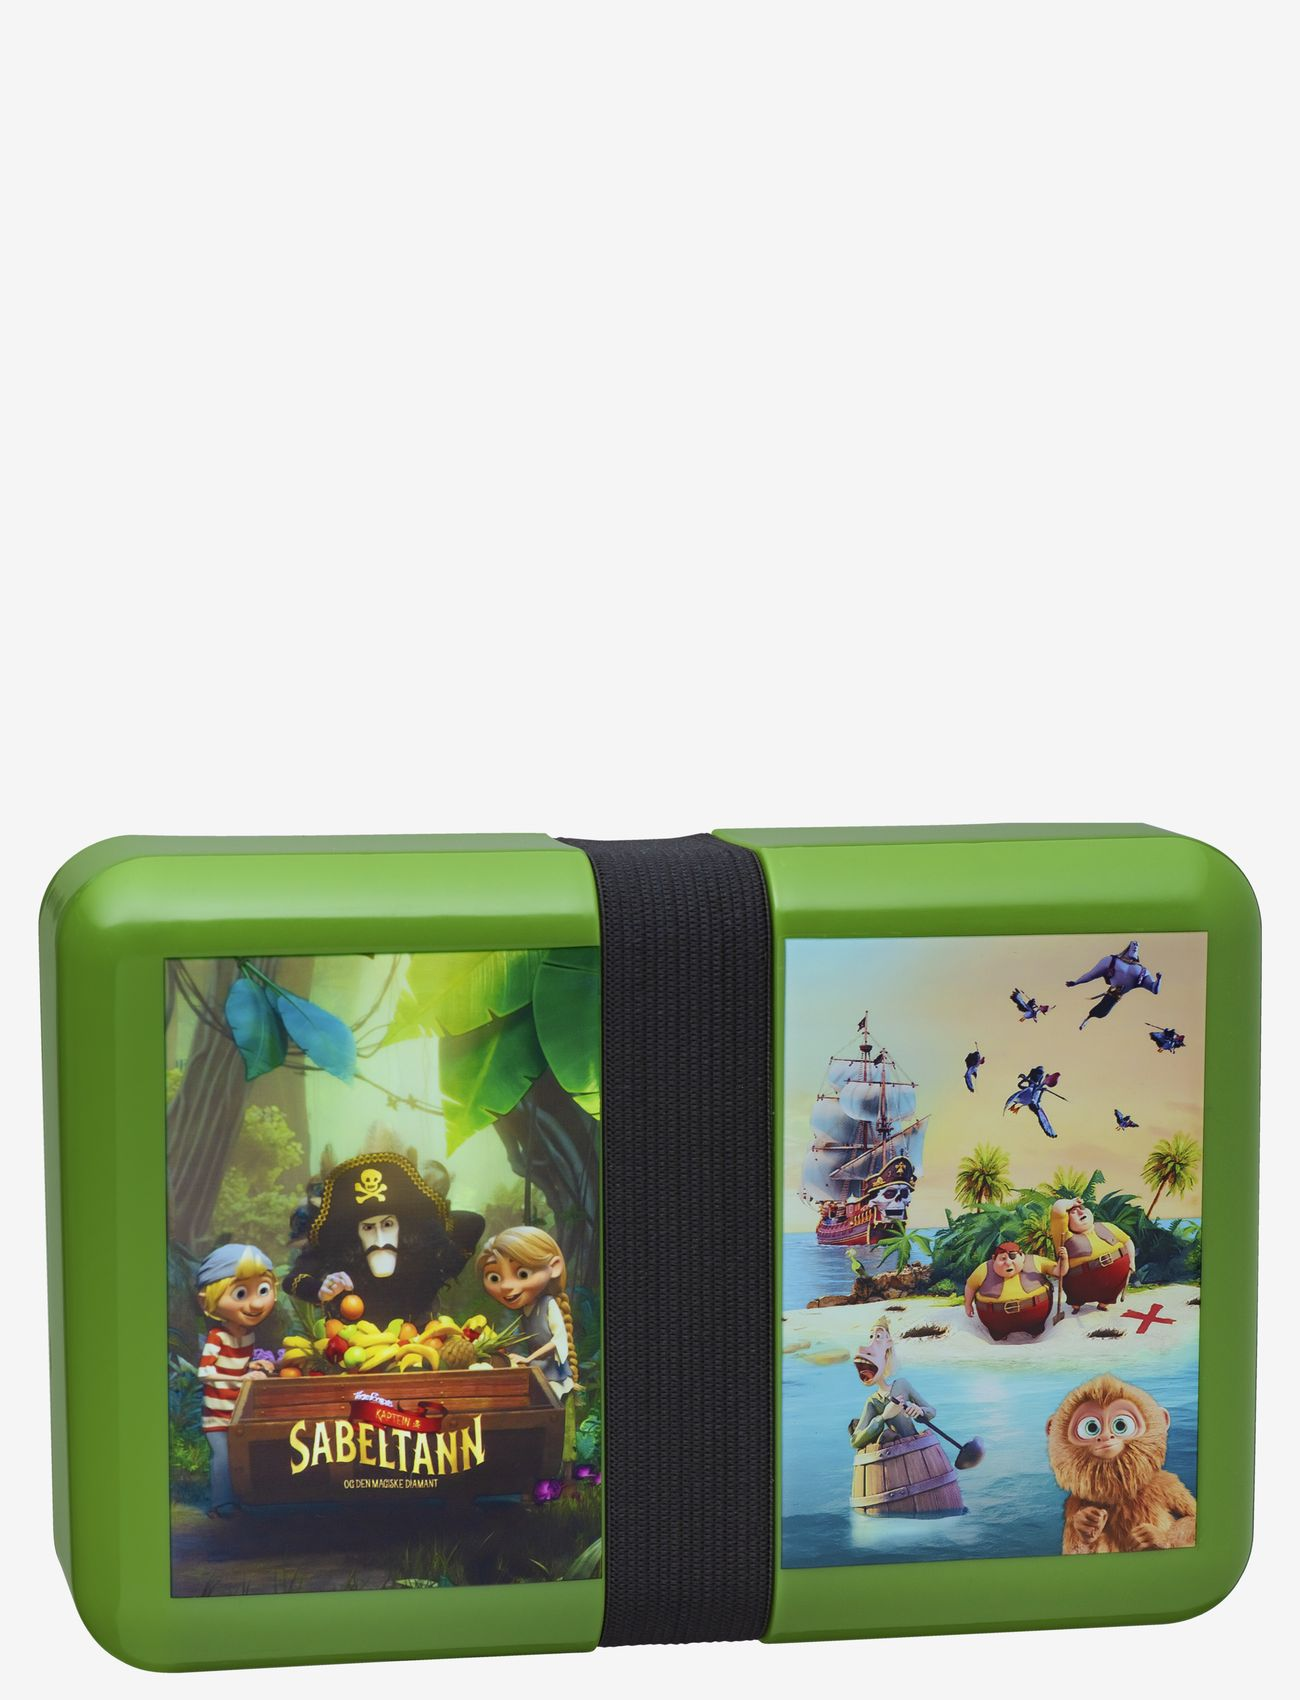 Captain Sabertooth Lunch box with string